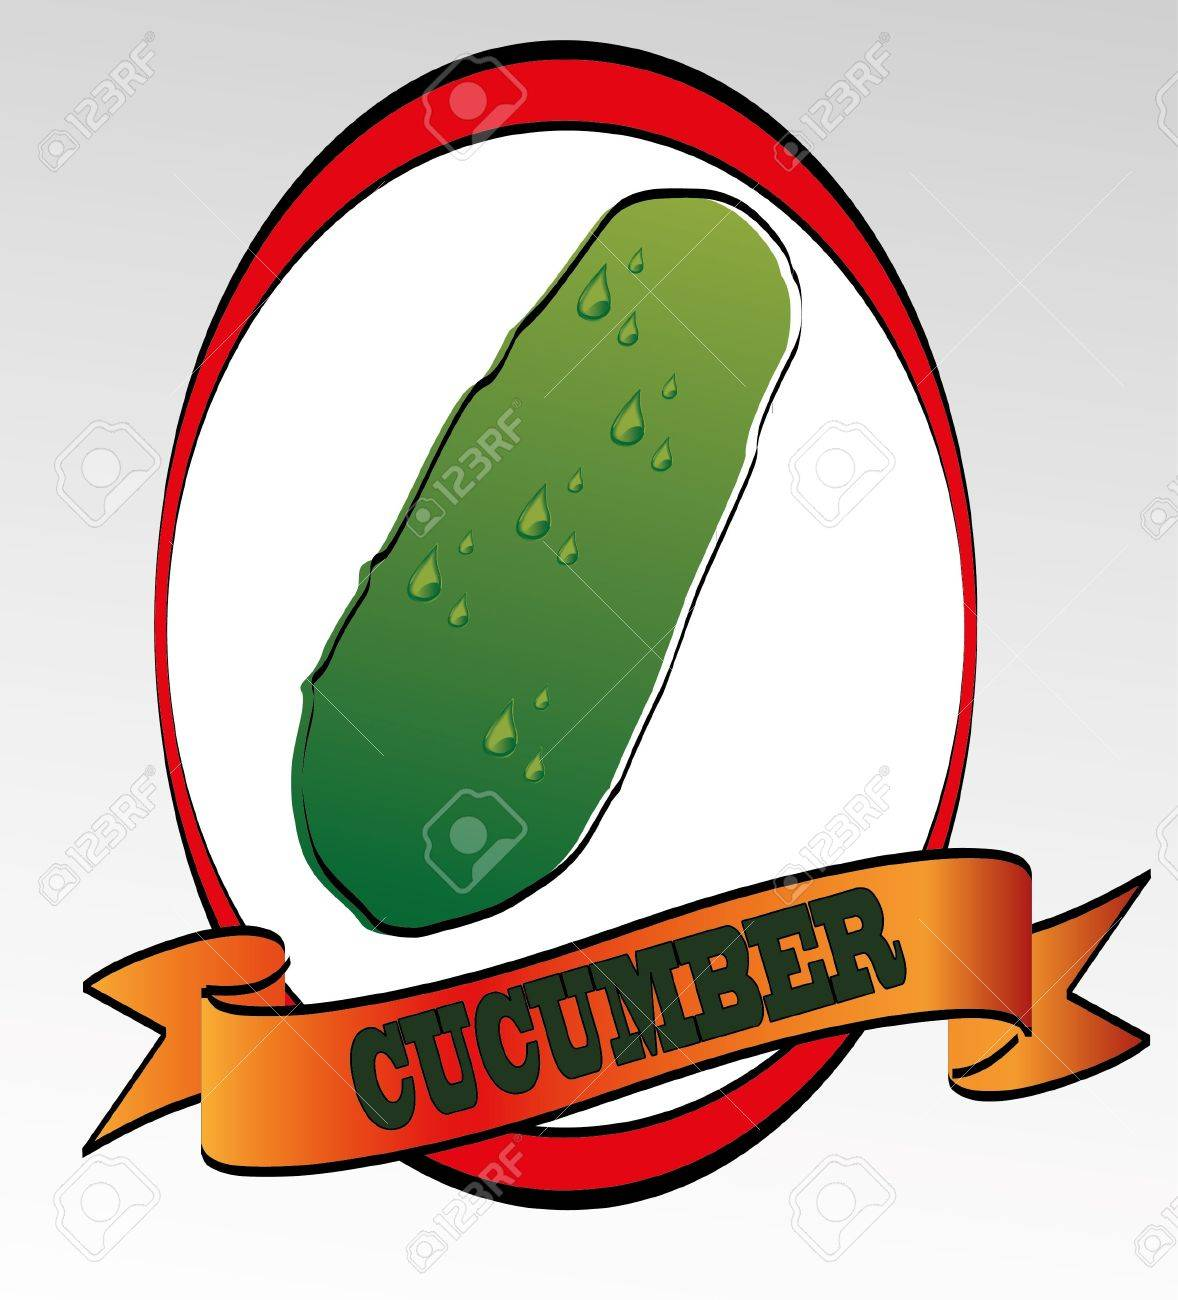 cucumber Stock Vector - 13342604